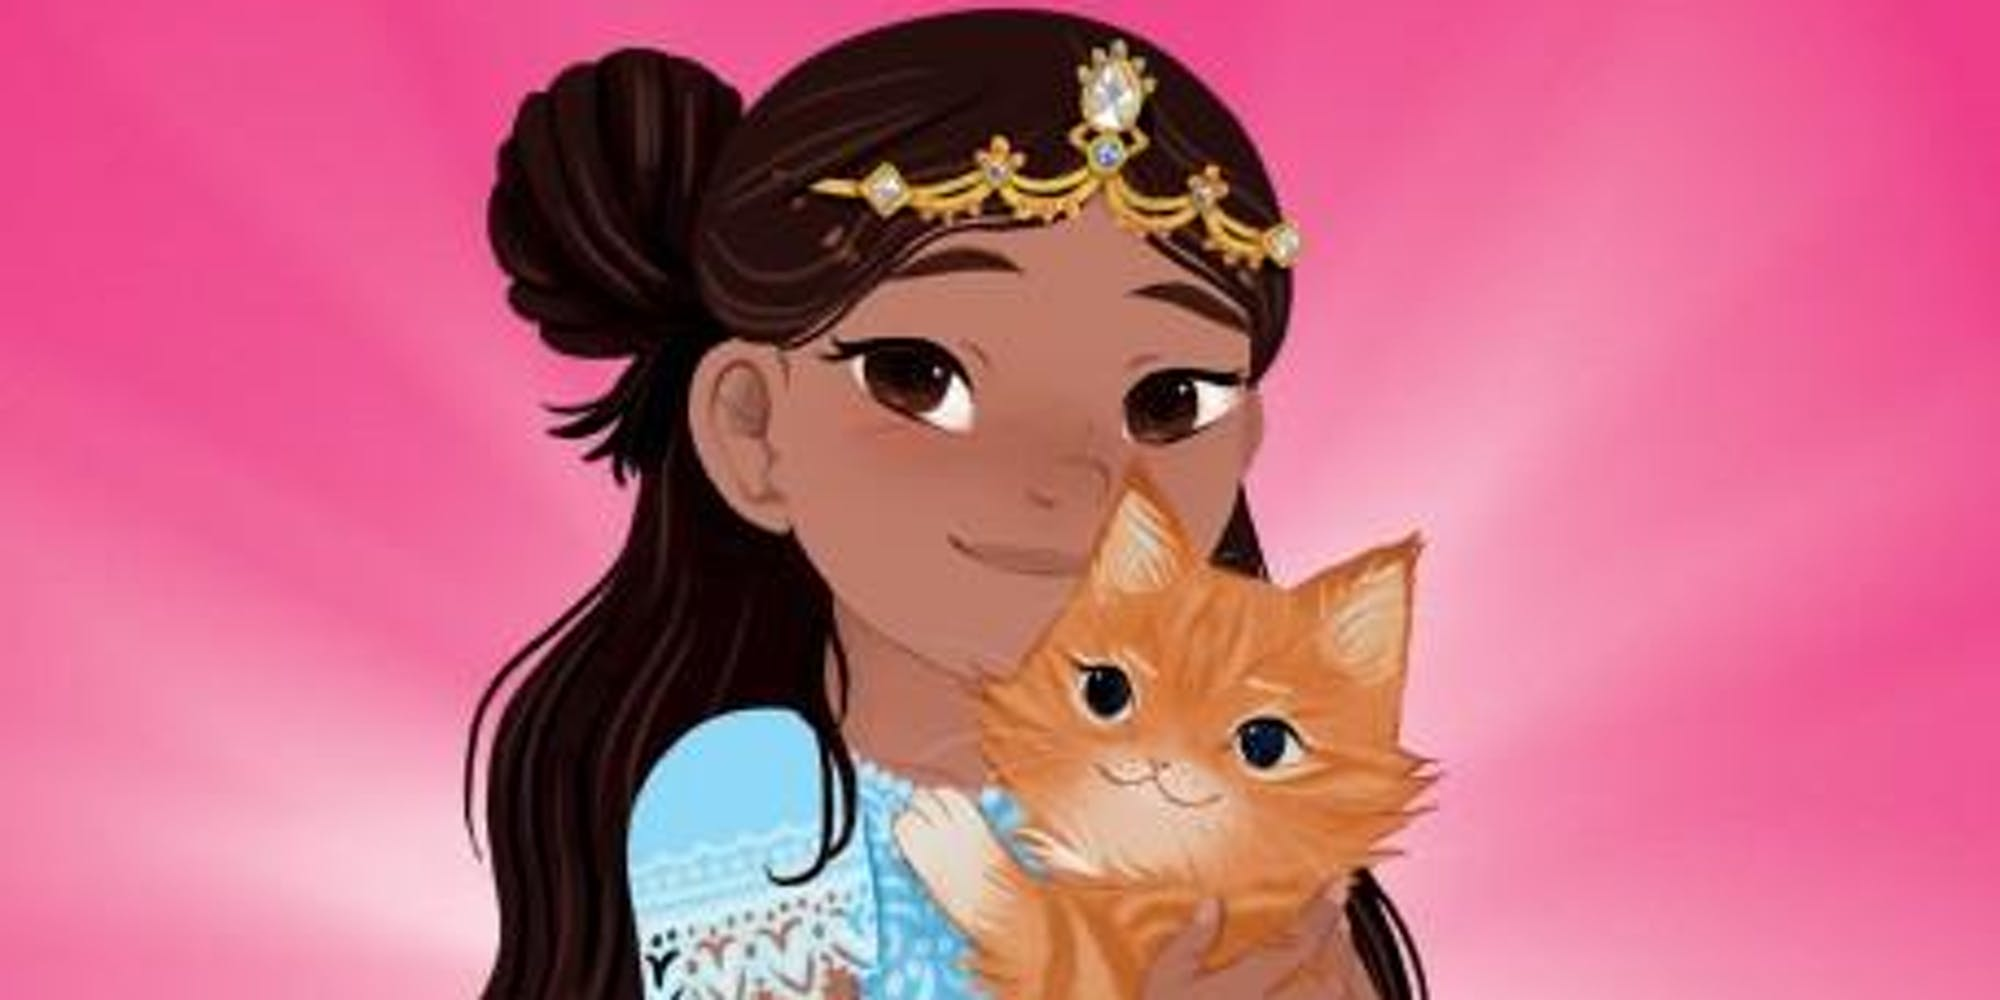 The Princess of Pets - The Naughty Kitten - Author Event, Art and Crafts